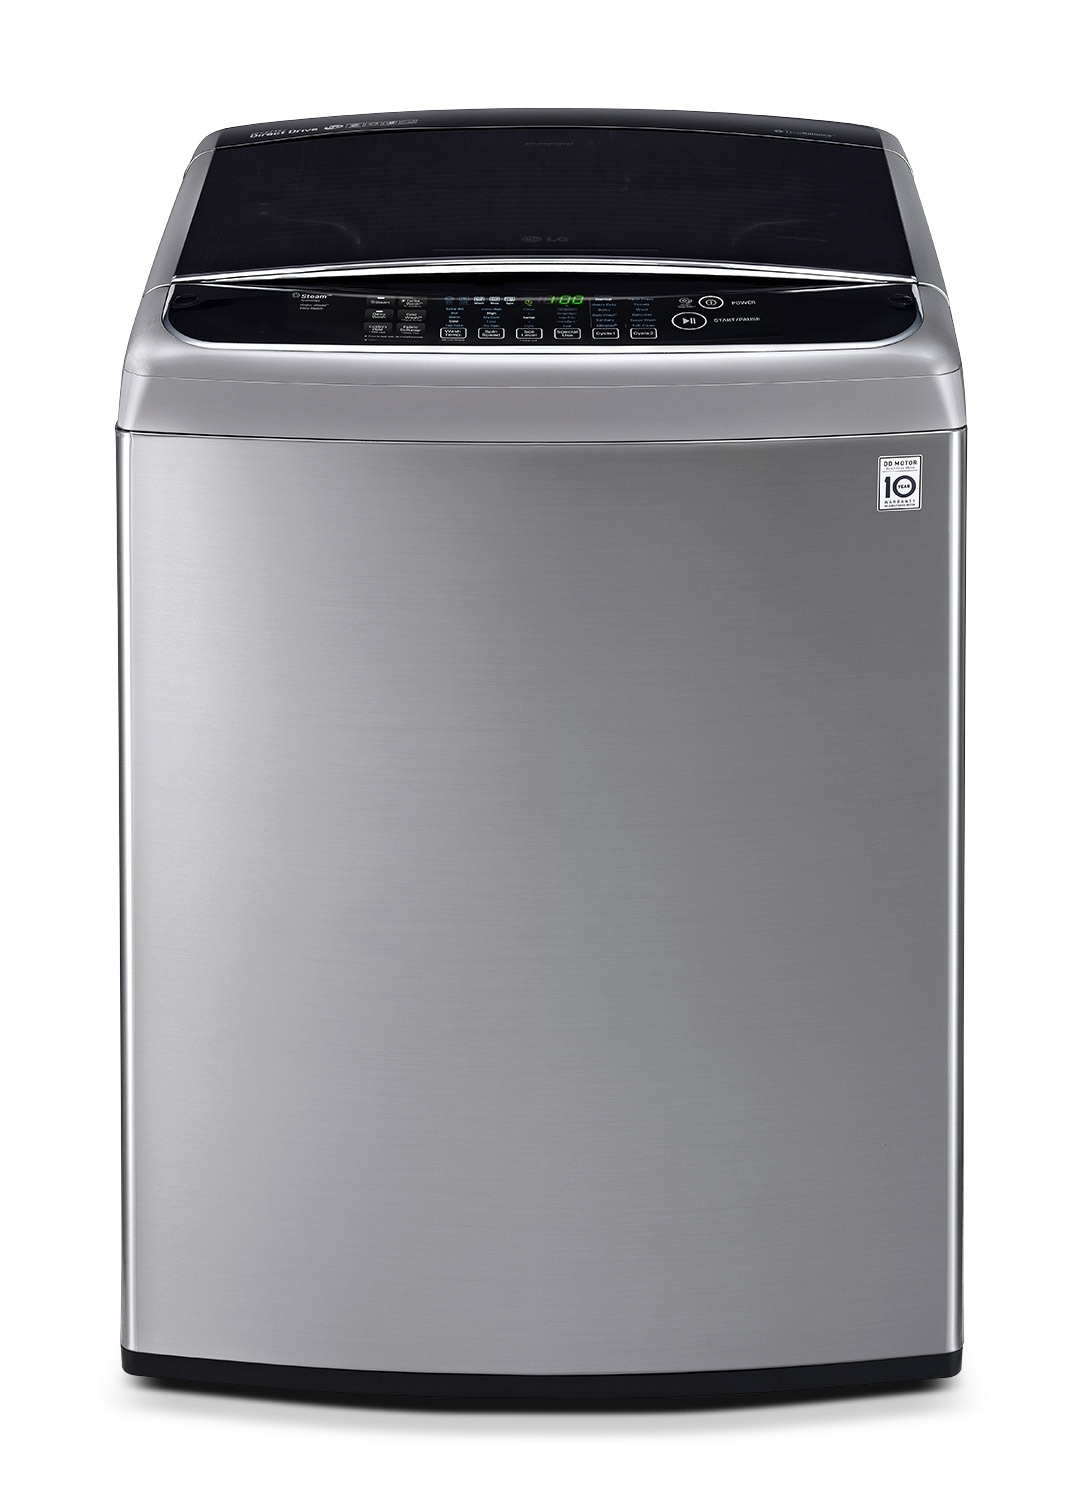 LG 5.8 Cu. Ft. Top-Load Washer - Graphite Steel